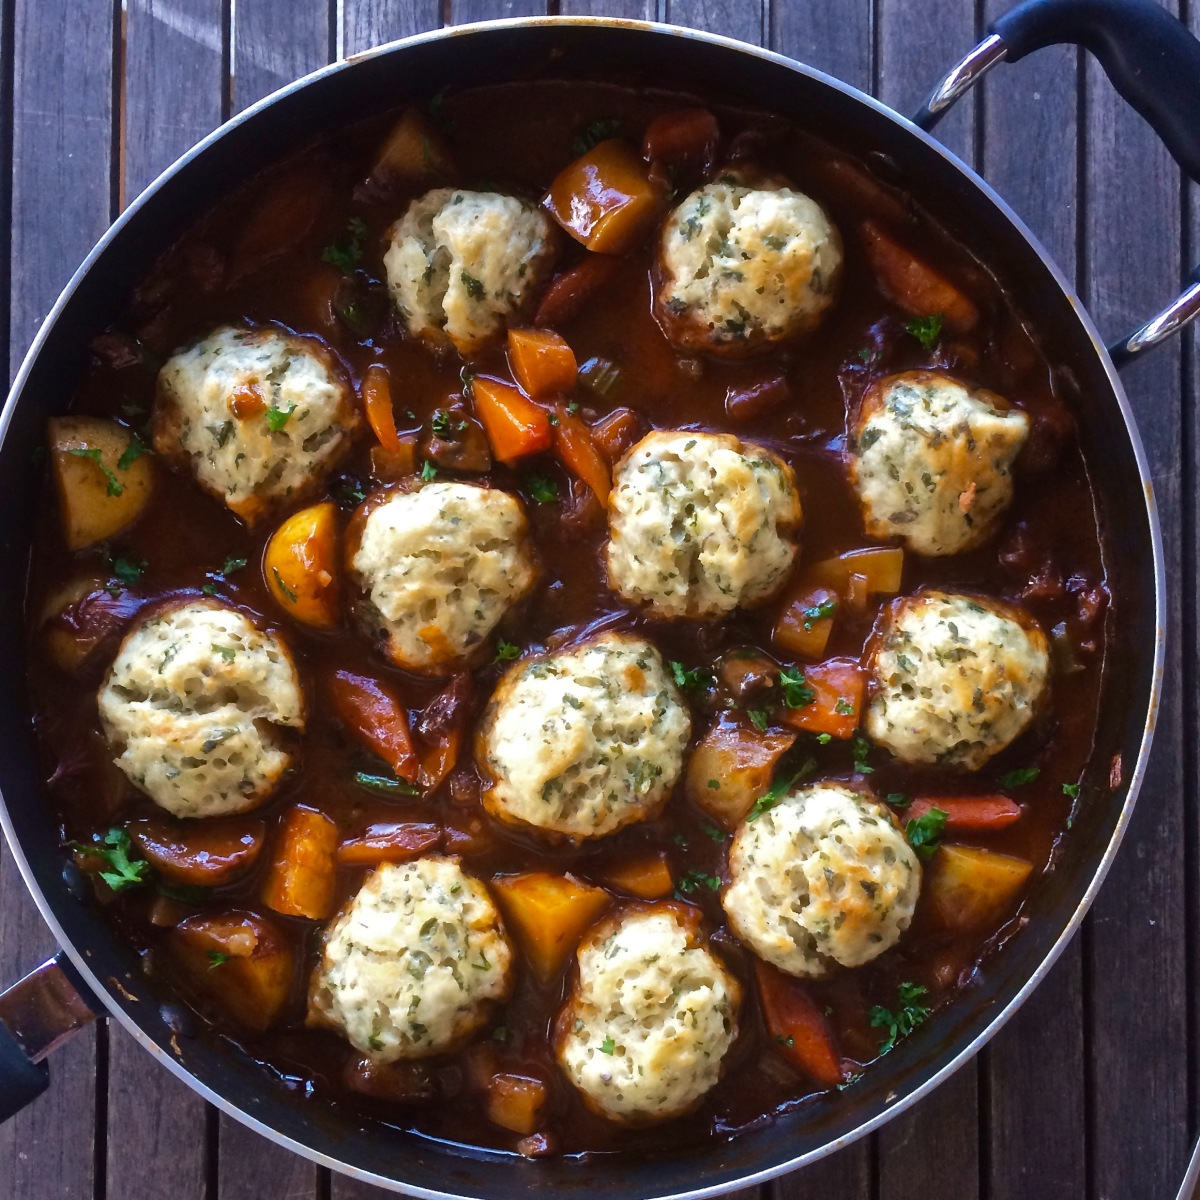 Hearty Winter Veg Stew, With Herby Dumplings